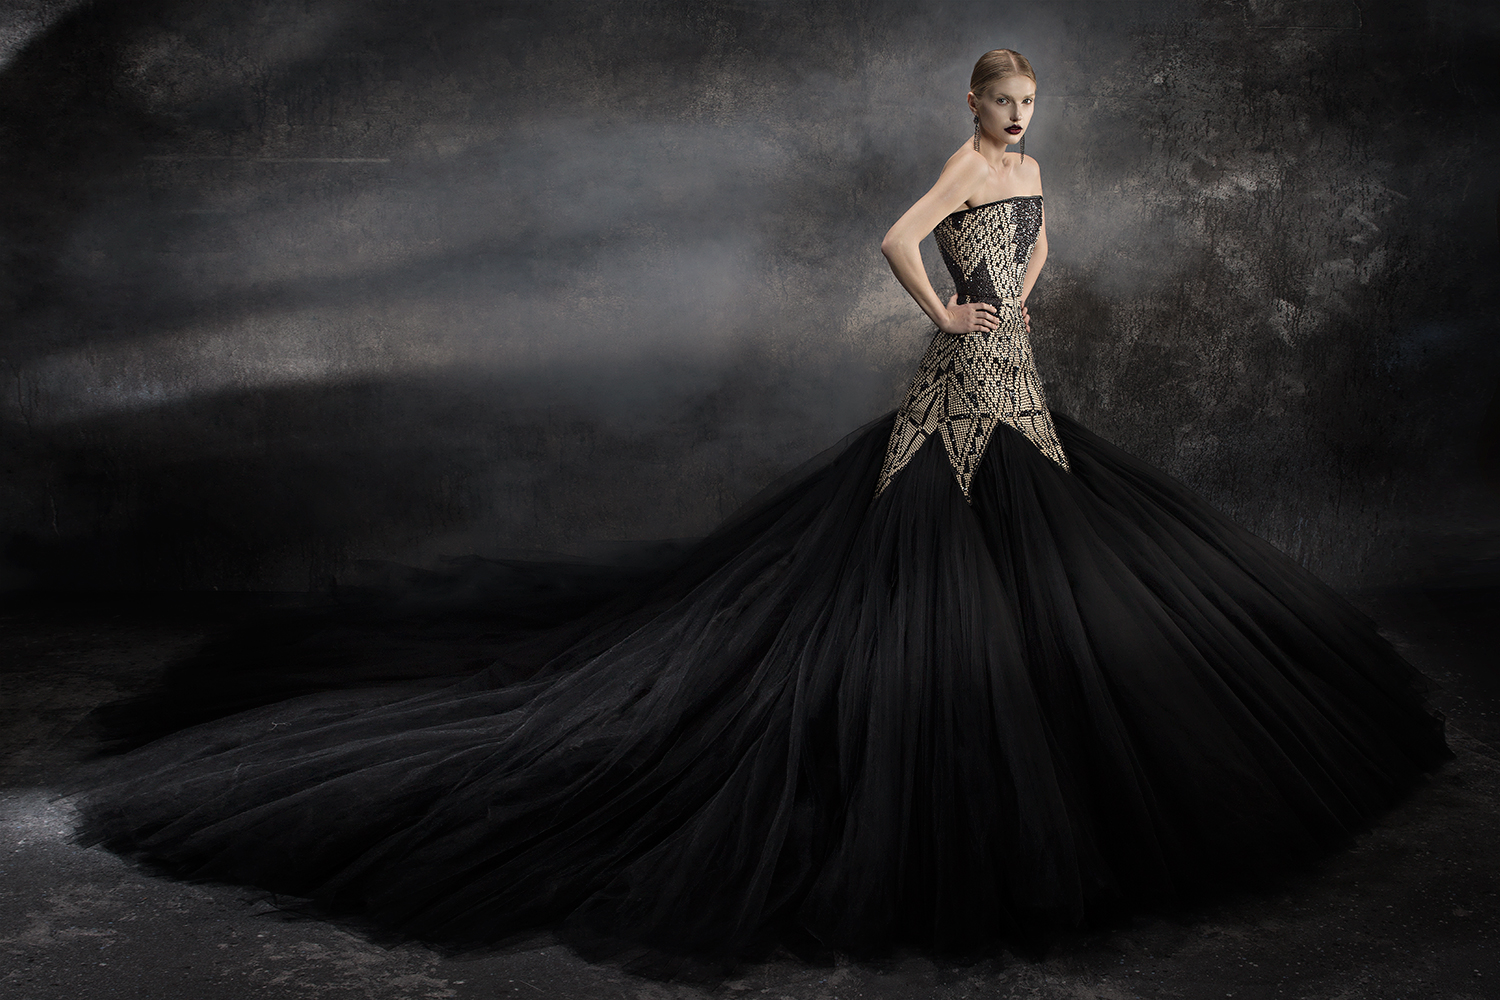 Handwoven hybrid of native material from the Philippines and layers of black tulle.